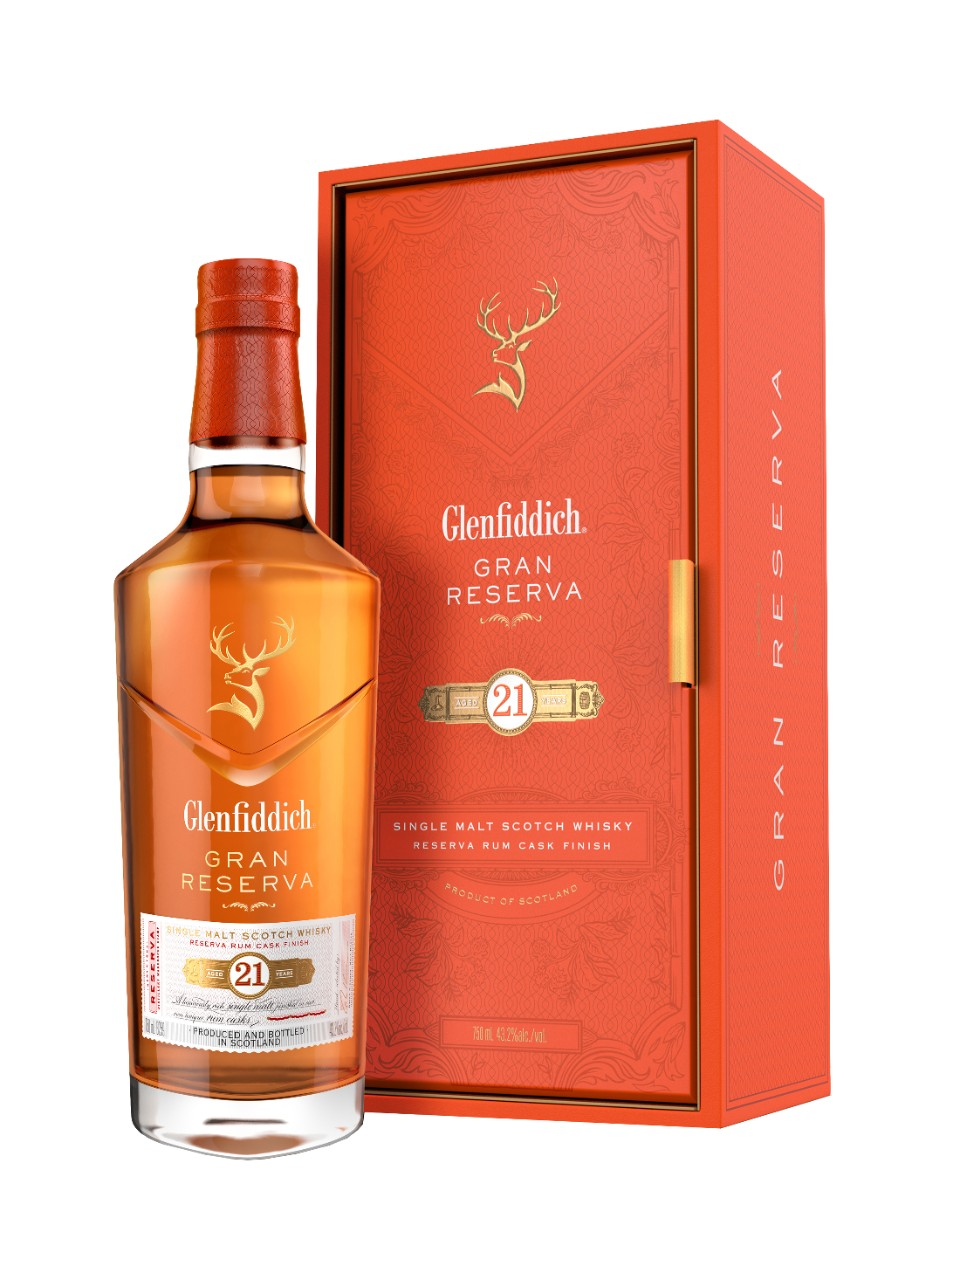 Image for Glenfiddich Gran Reserva 21 Year Old Single Malt Scotch Whisky from LCBO